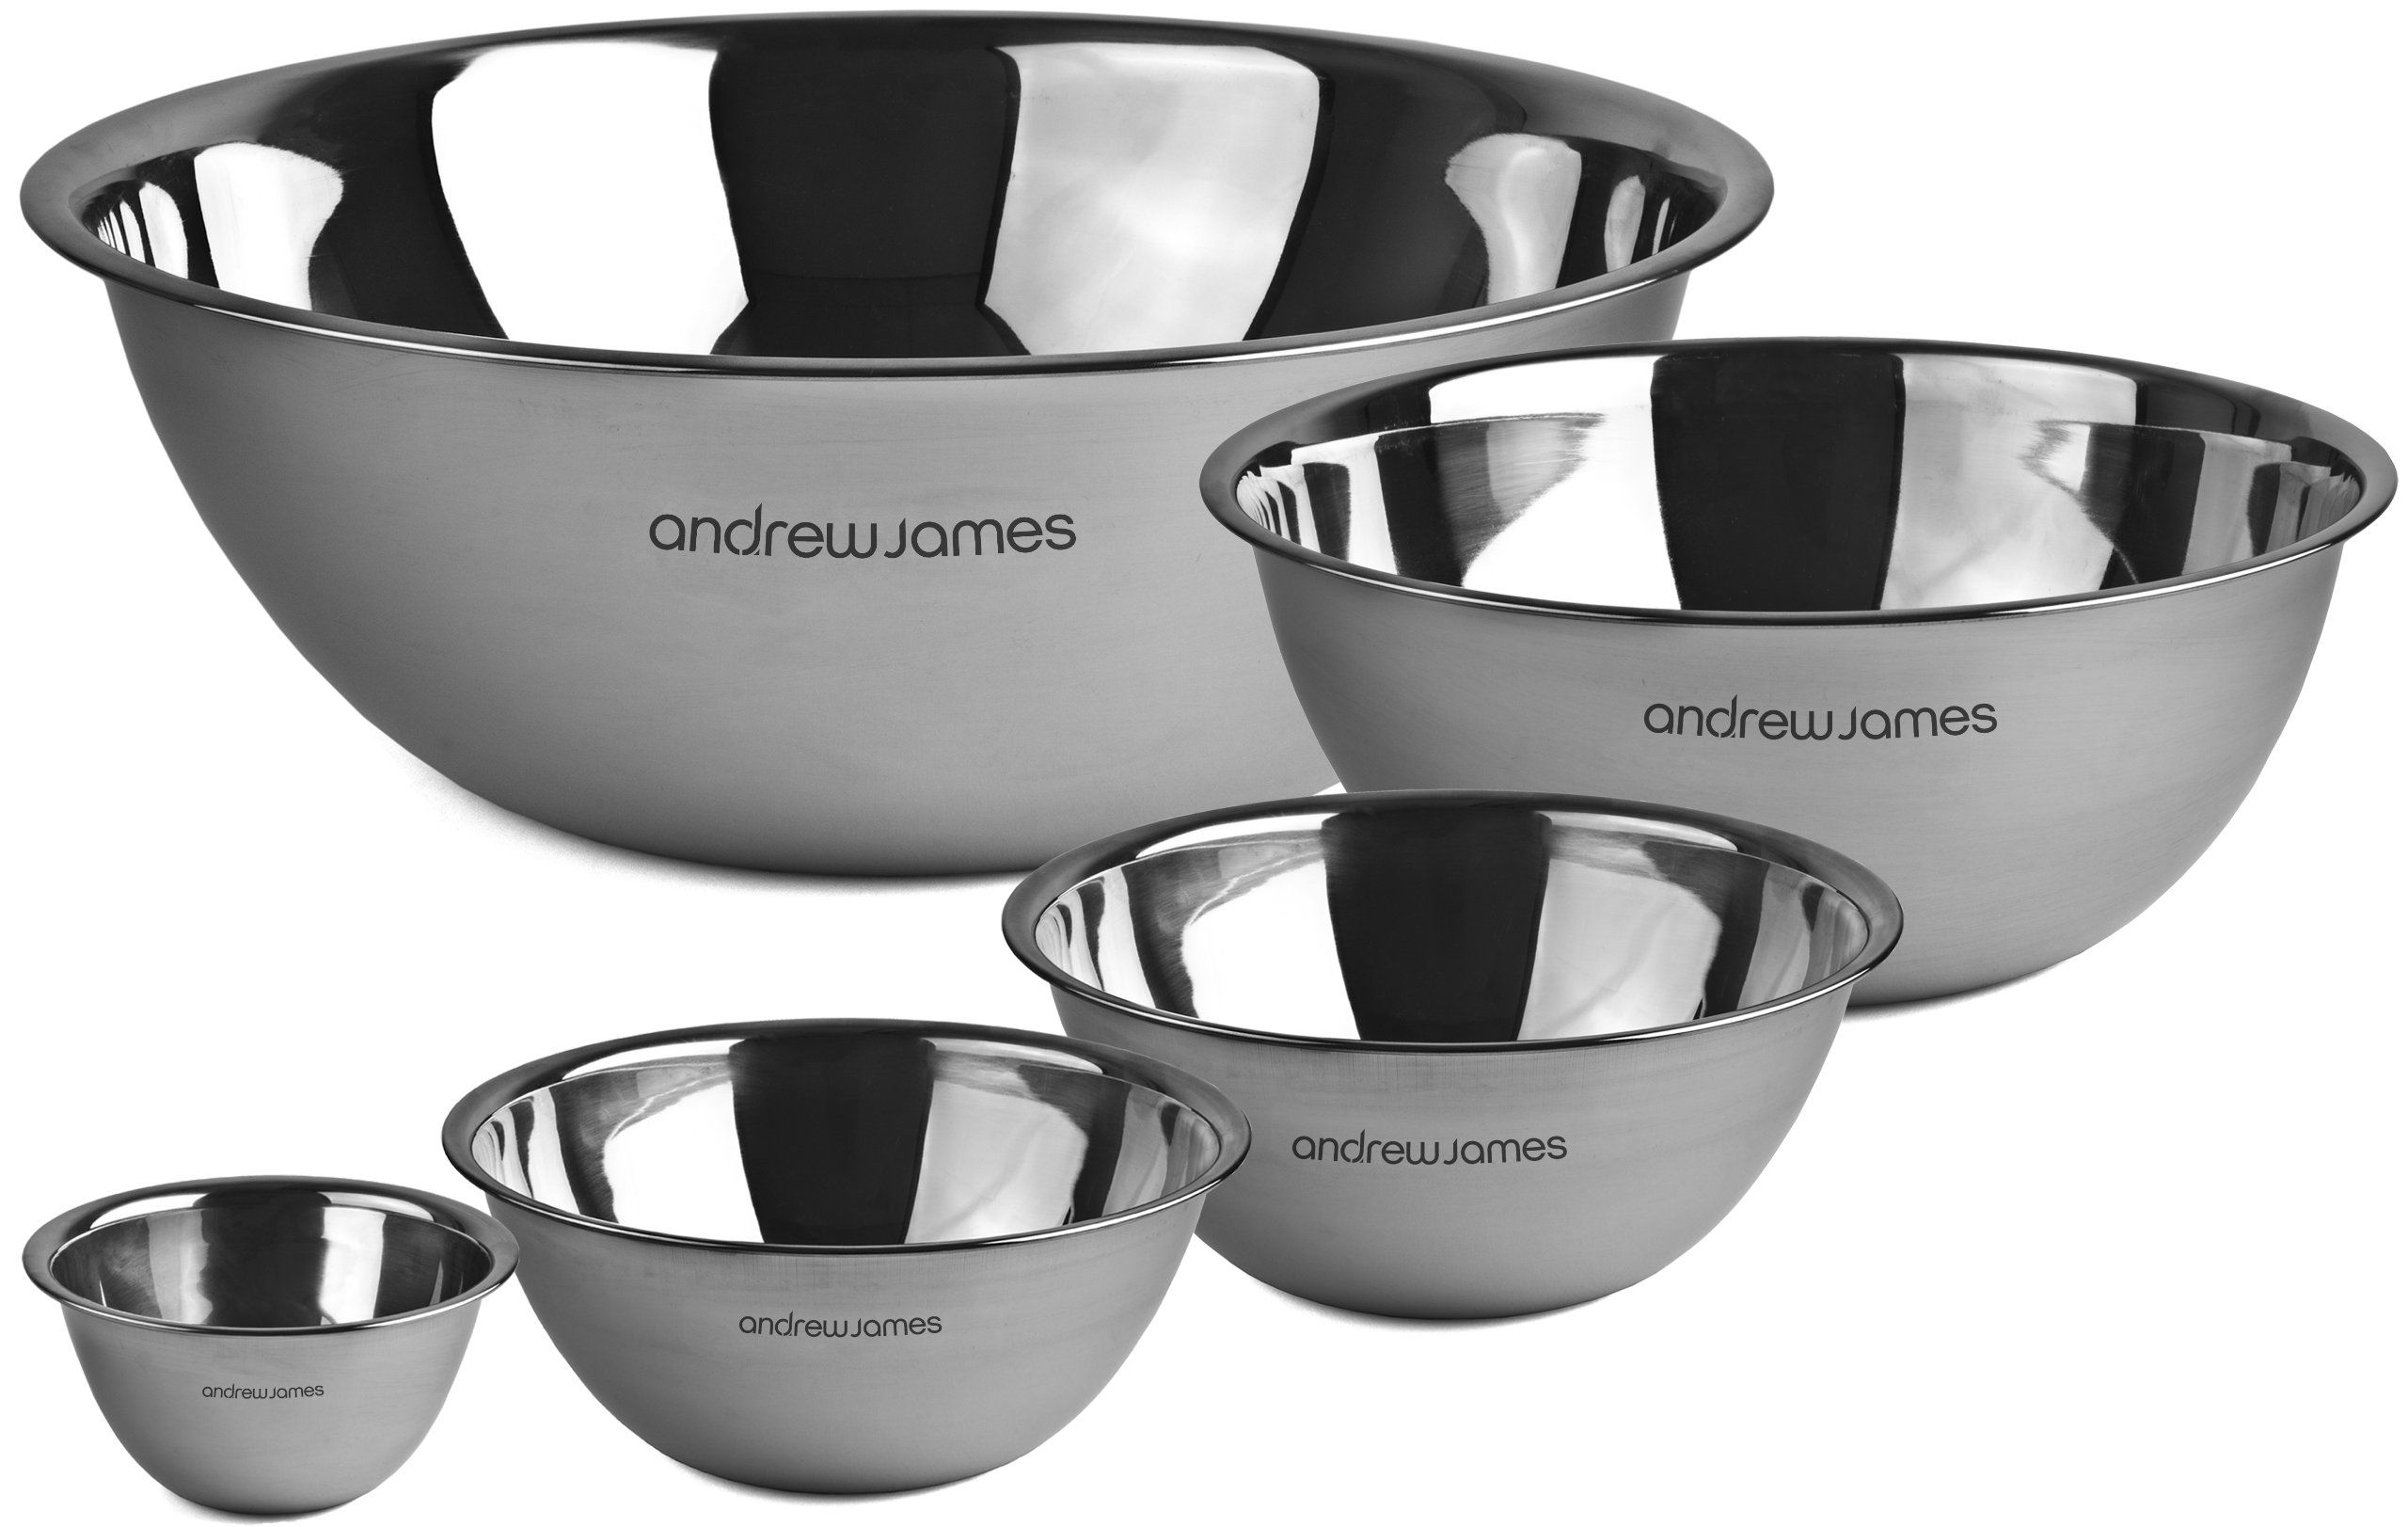 Andrew James Professional Stainless Steel 5 Piece Mixing